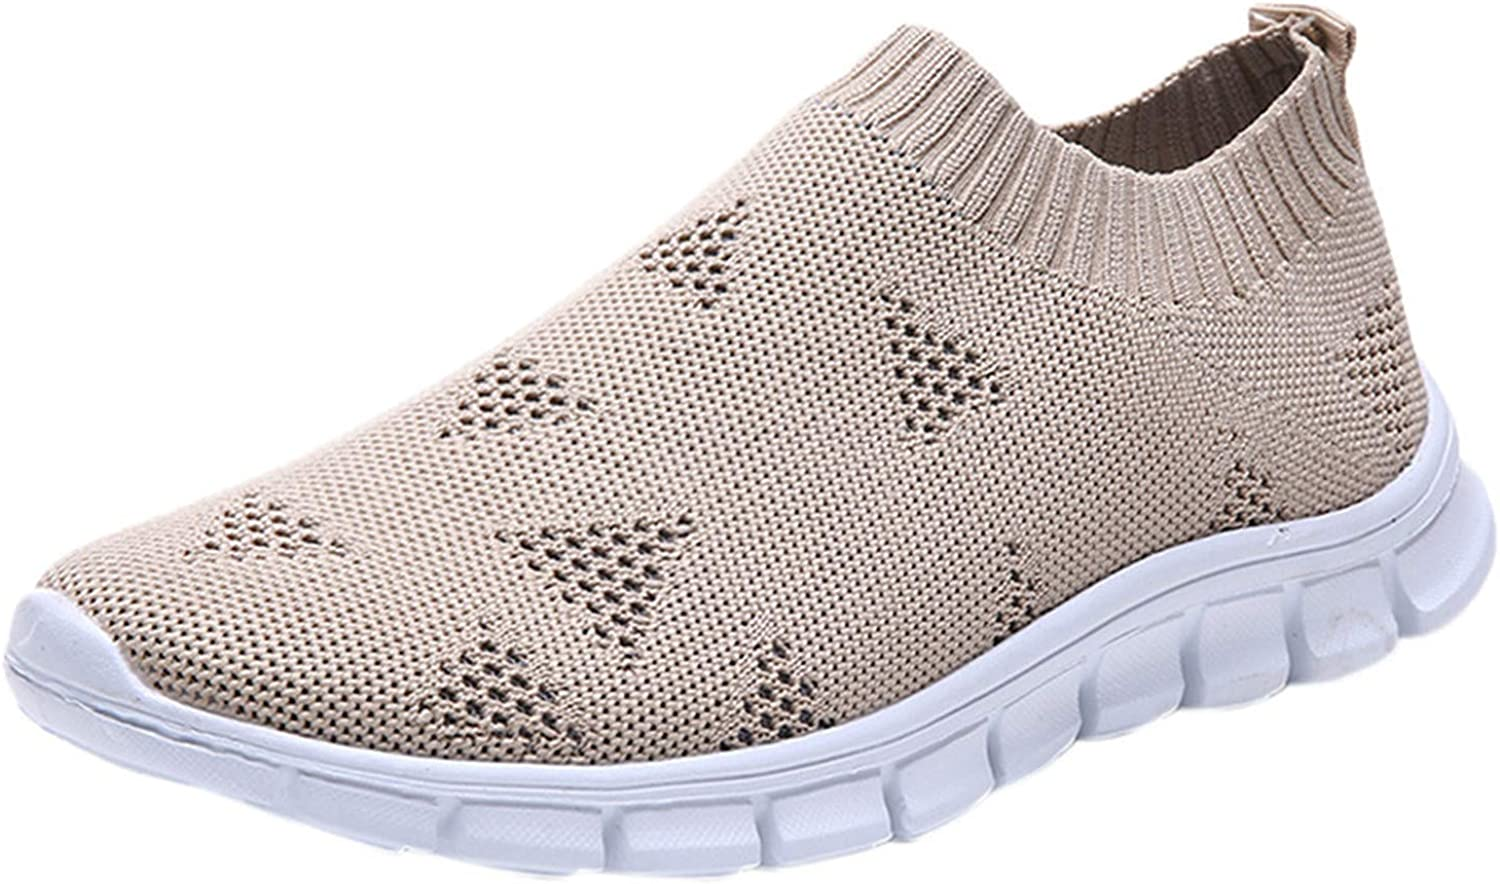 Women's Running Lace up Walking Fashio Shoes Max 49% OFF Comfort Lightweight Max 57% OFF